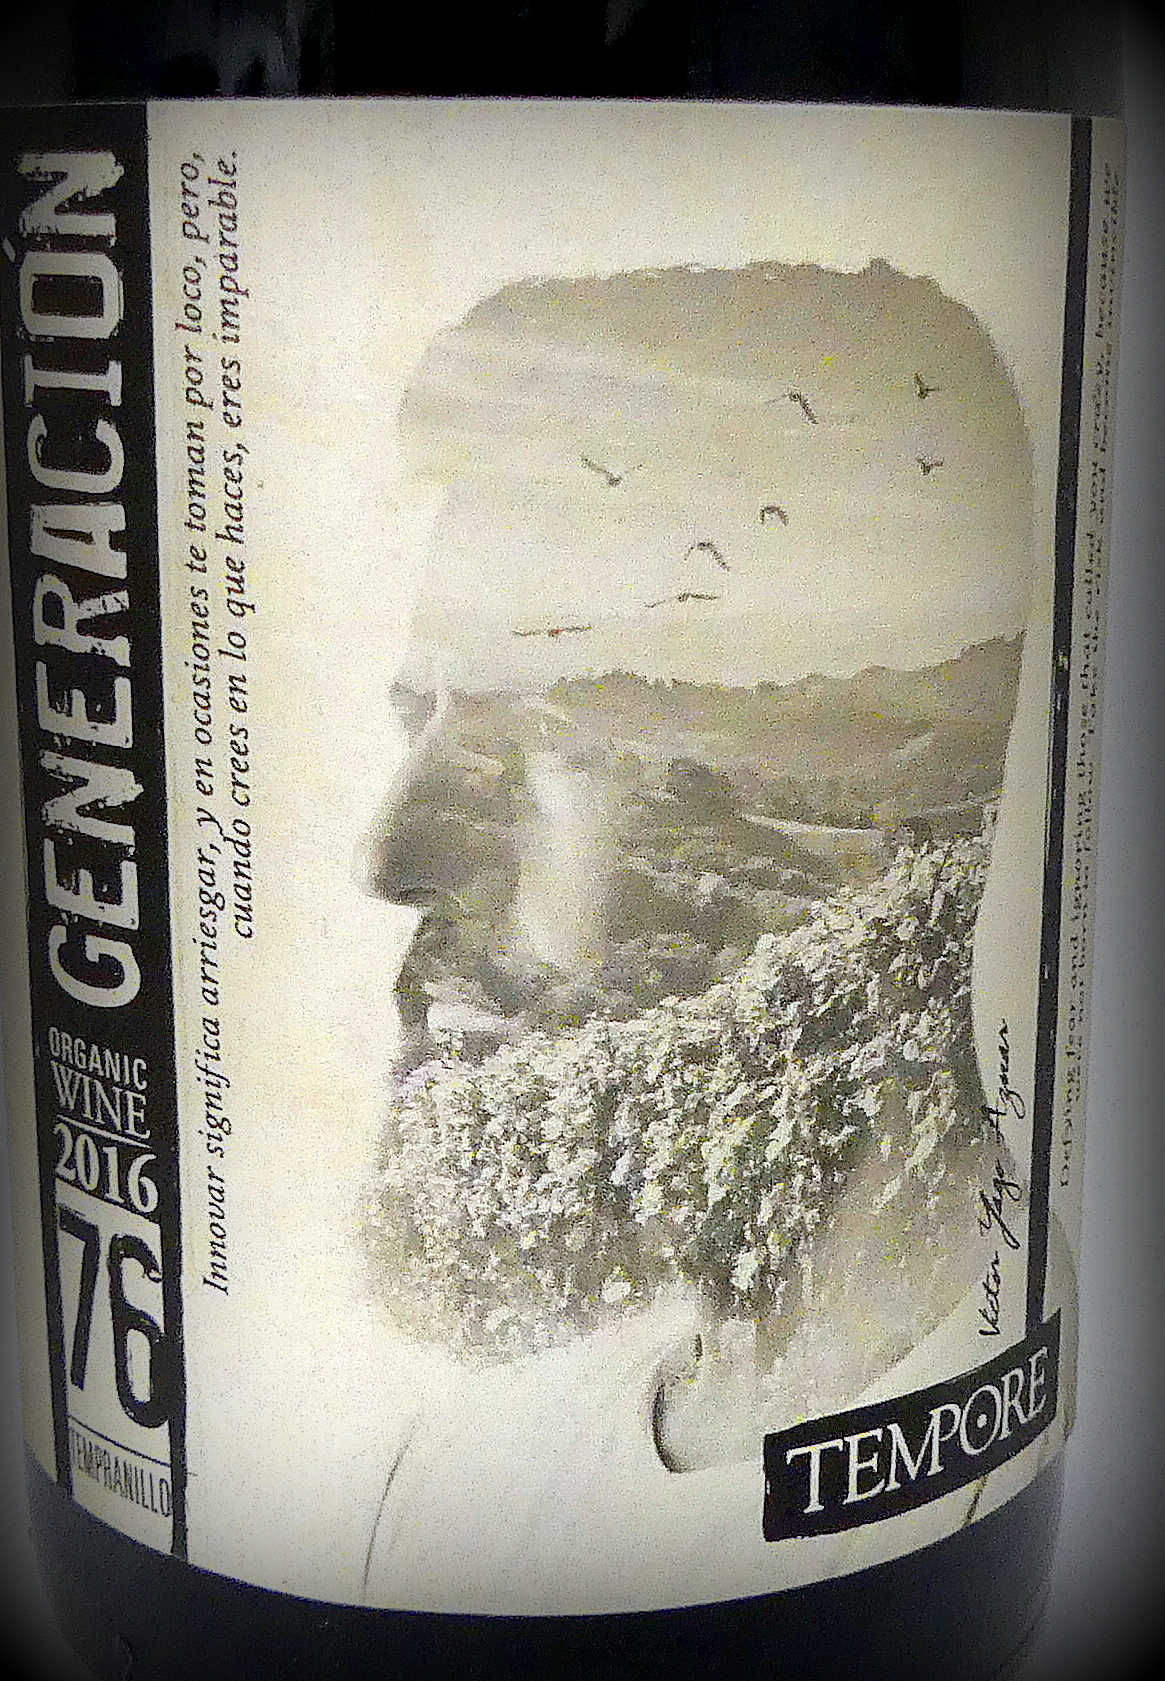 Generation 76 Tempranillo